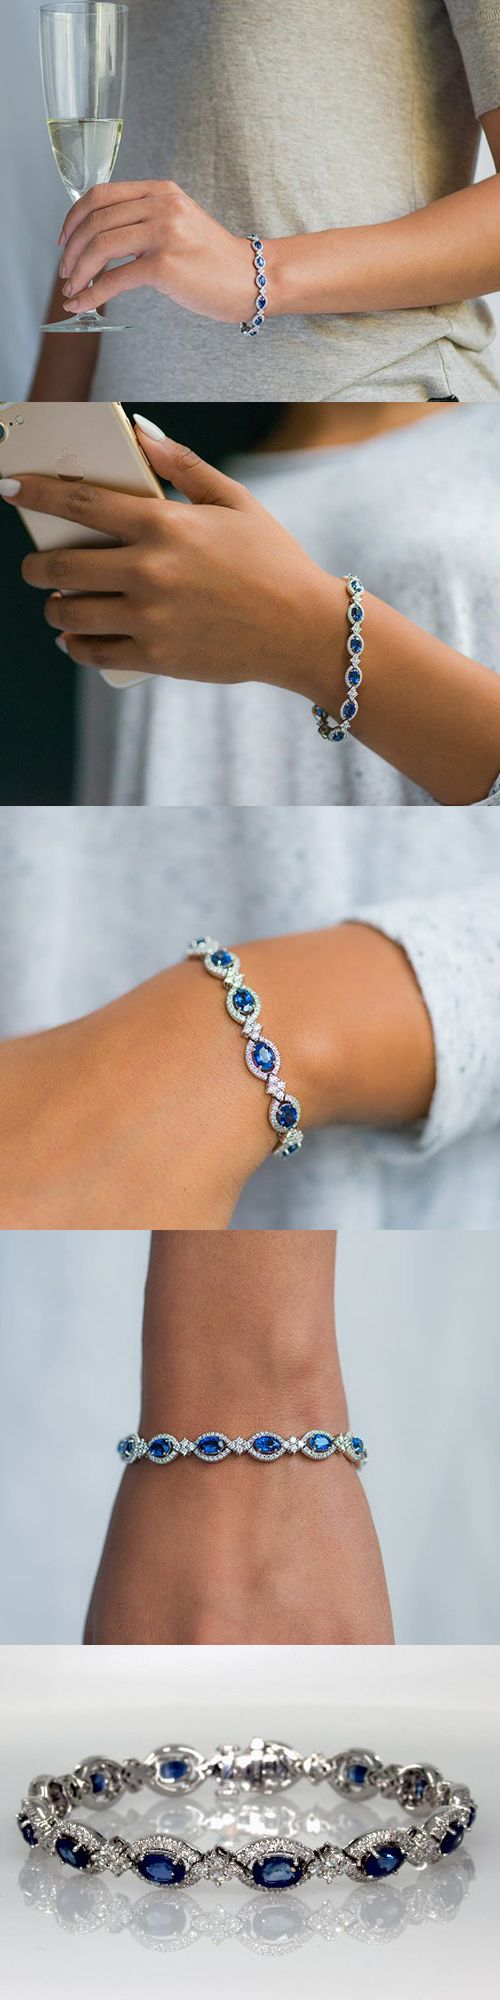 Beautiful & Unique Gem Stone & Platinum Bracelet Jewelry Products with Gemstones Healing Crystals, Beads like Ruby, Emerald / Emeralds, Blue & Yellow Sapphire, Diamond / Diamonds etc for Men / Women. These White Gold Rare Awesome DIY Bracelets, Bangles, Rings, Necklace Ideas are Raw Fashion which are Simple in Style Rocks yet comes with Natural / Nature Benefits! A perfect gift, favor craft for Engagement, Wedding, Marriage Anniversary (For 10 Year, 5th, 15th, 25th, 30th, 40th, 50th)